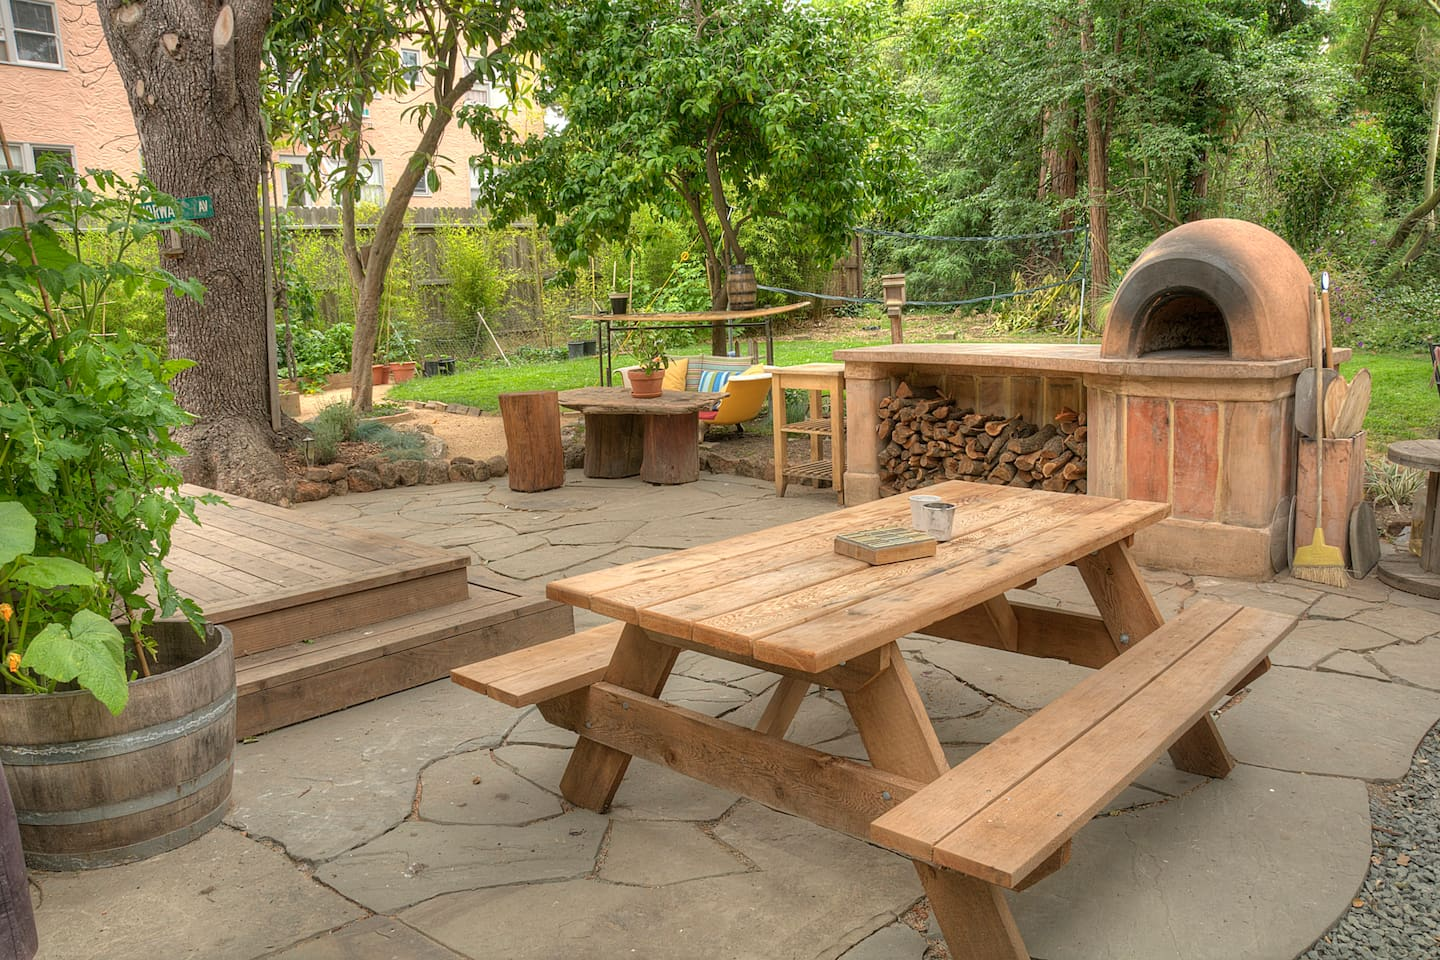 Patio and yard with cob pizza oven, bbq and lots of room to hang out.